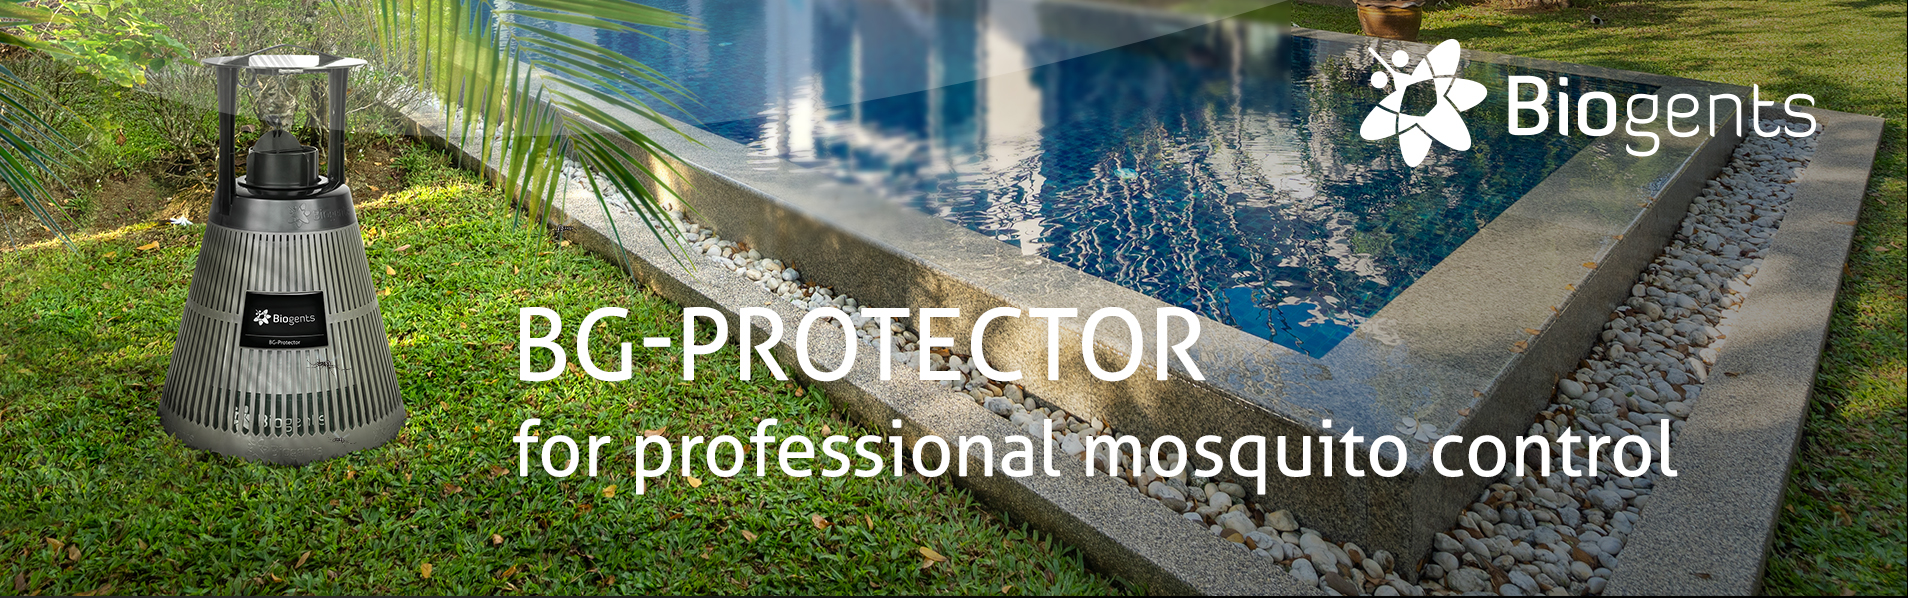 Press Release: Biogents Launches the BG-Protector for Professional Mosquito Control